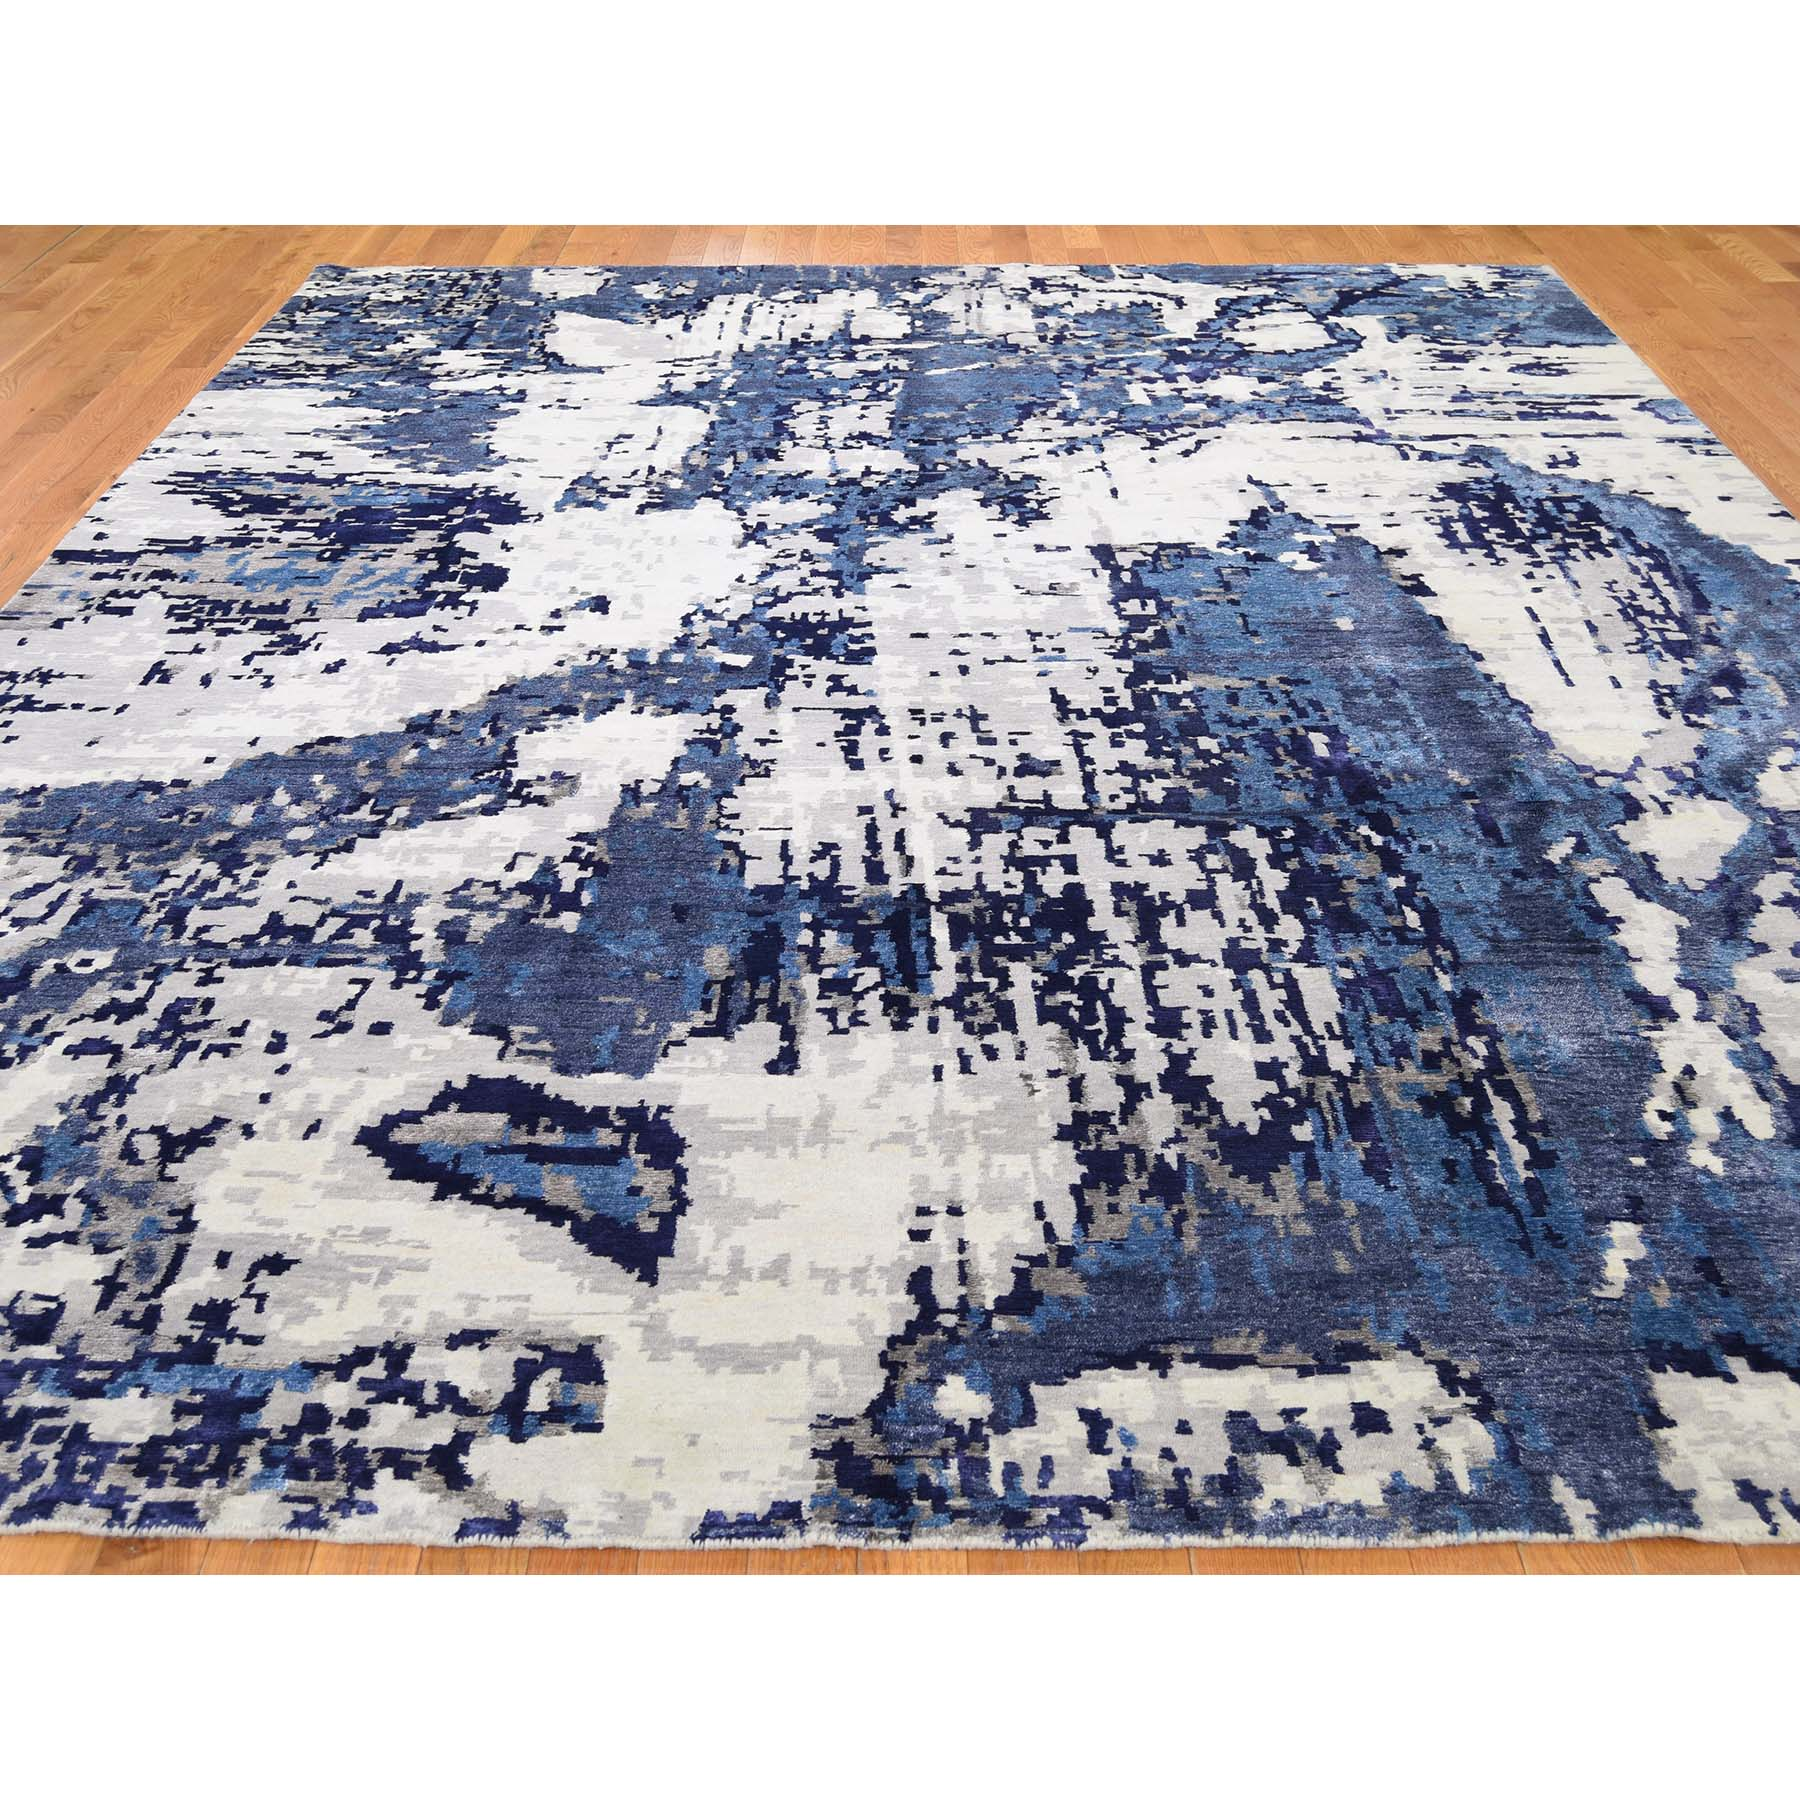 9-x12- High And Low Pile Abstract Design Wool And Silk Hand-Knotted Oriental Rug